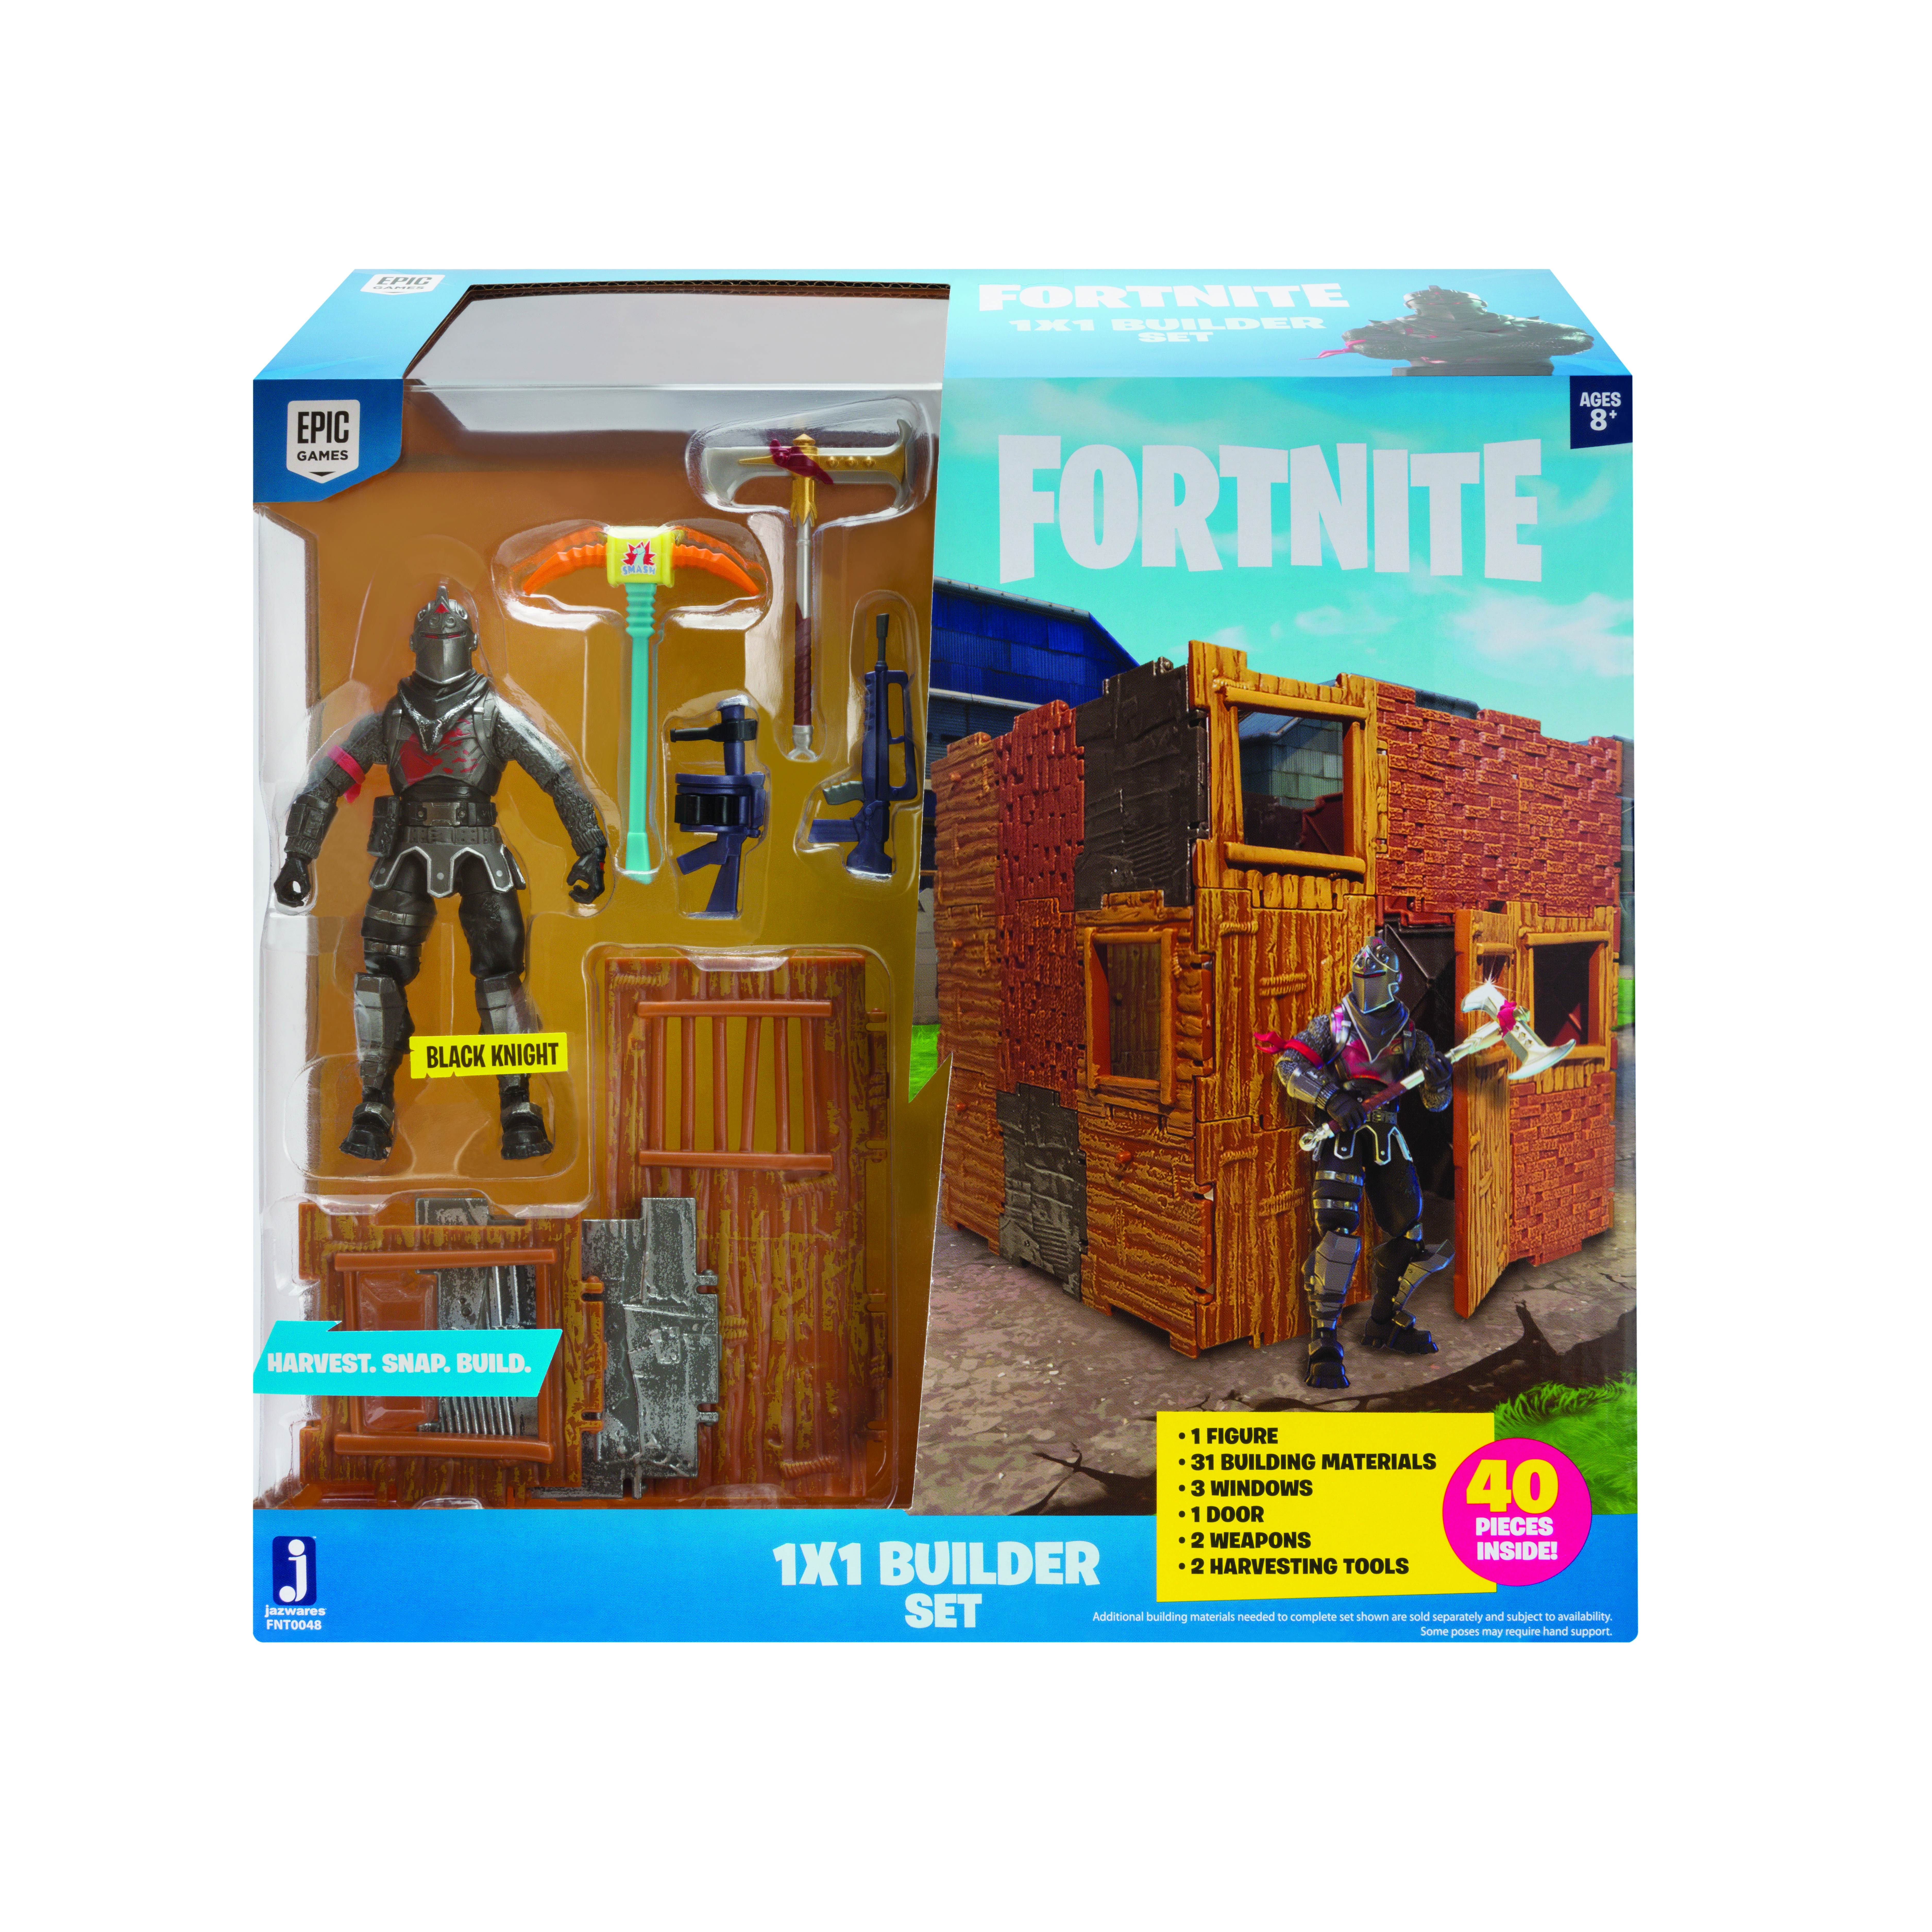 FORTNITE PACHET CU 1 FIGURINA (1x1 Builder Set) -BLACK KNIGHT S1